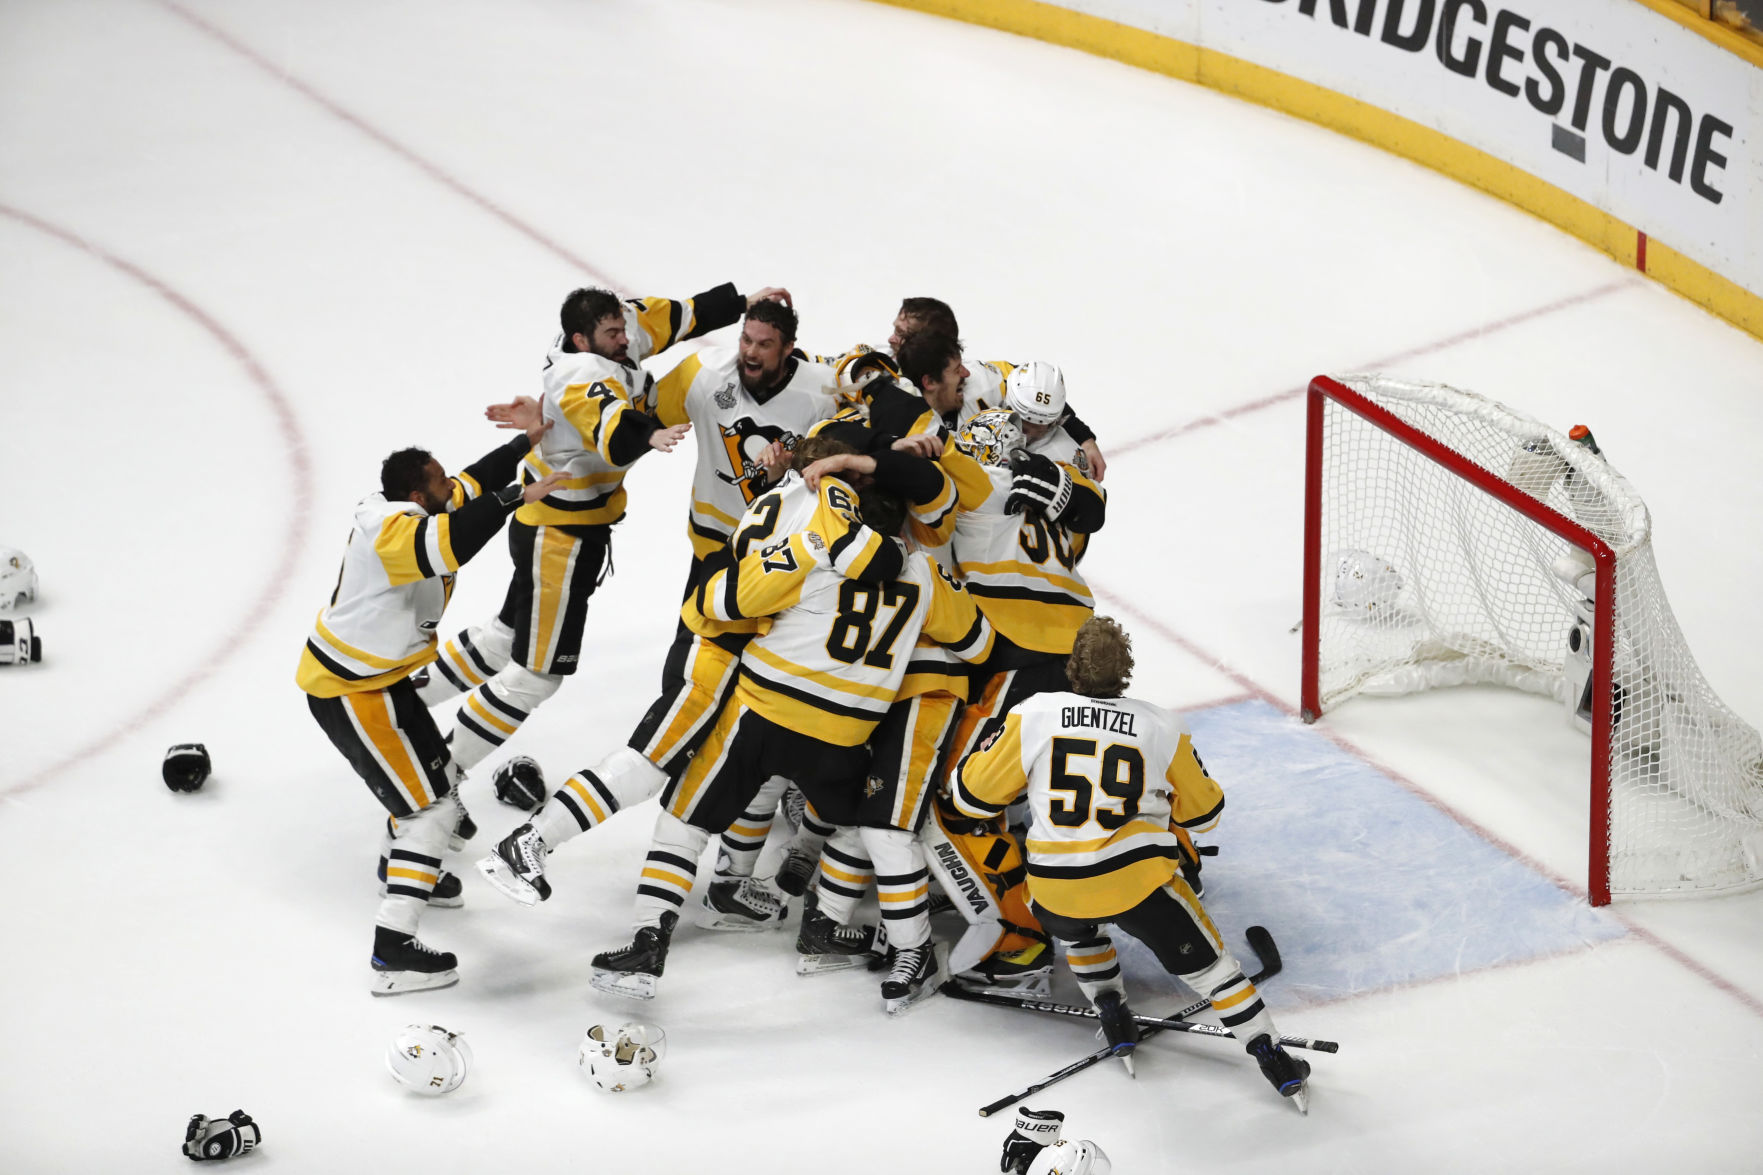 Pittsburgh Penguins Win Stanley Cup Final